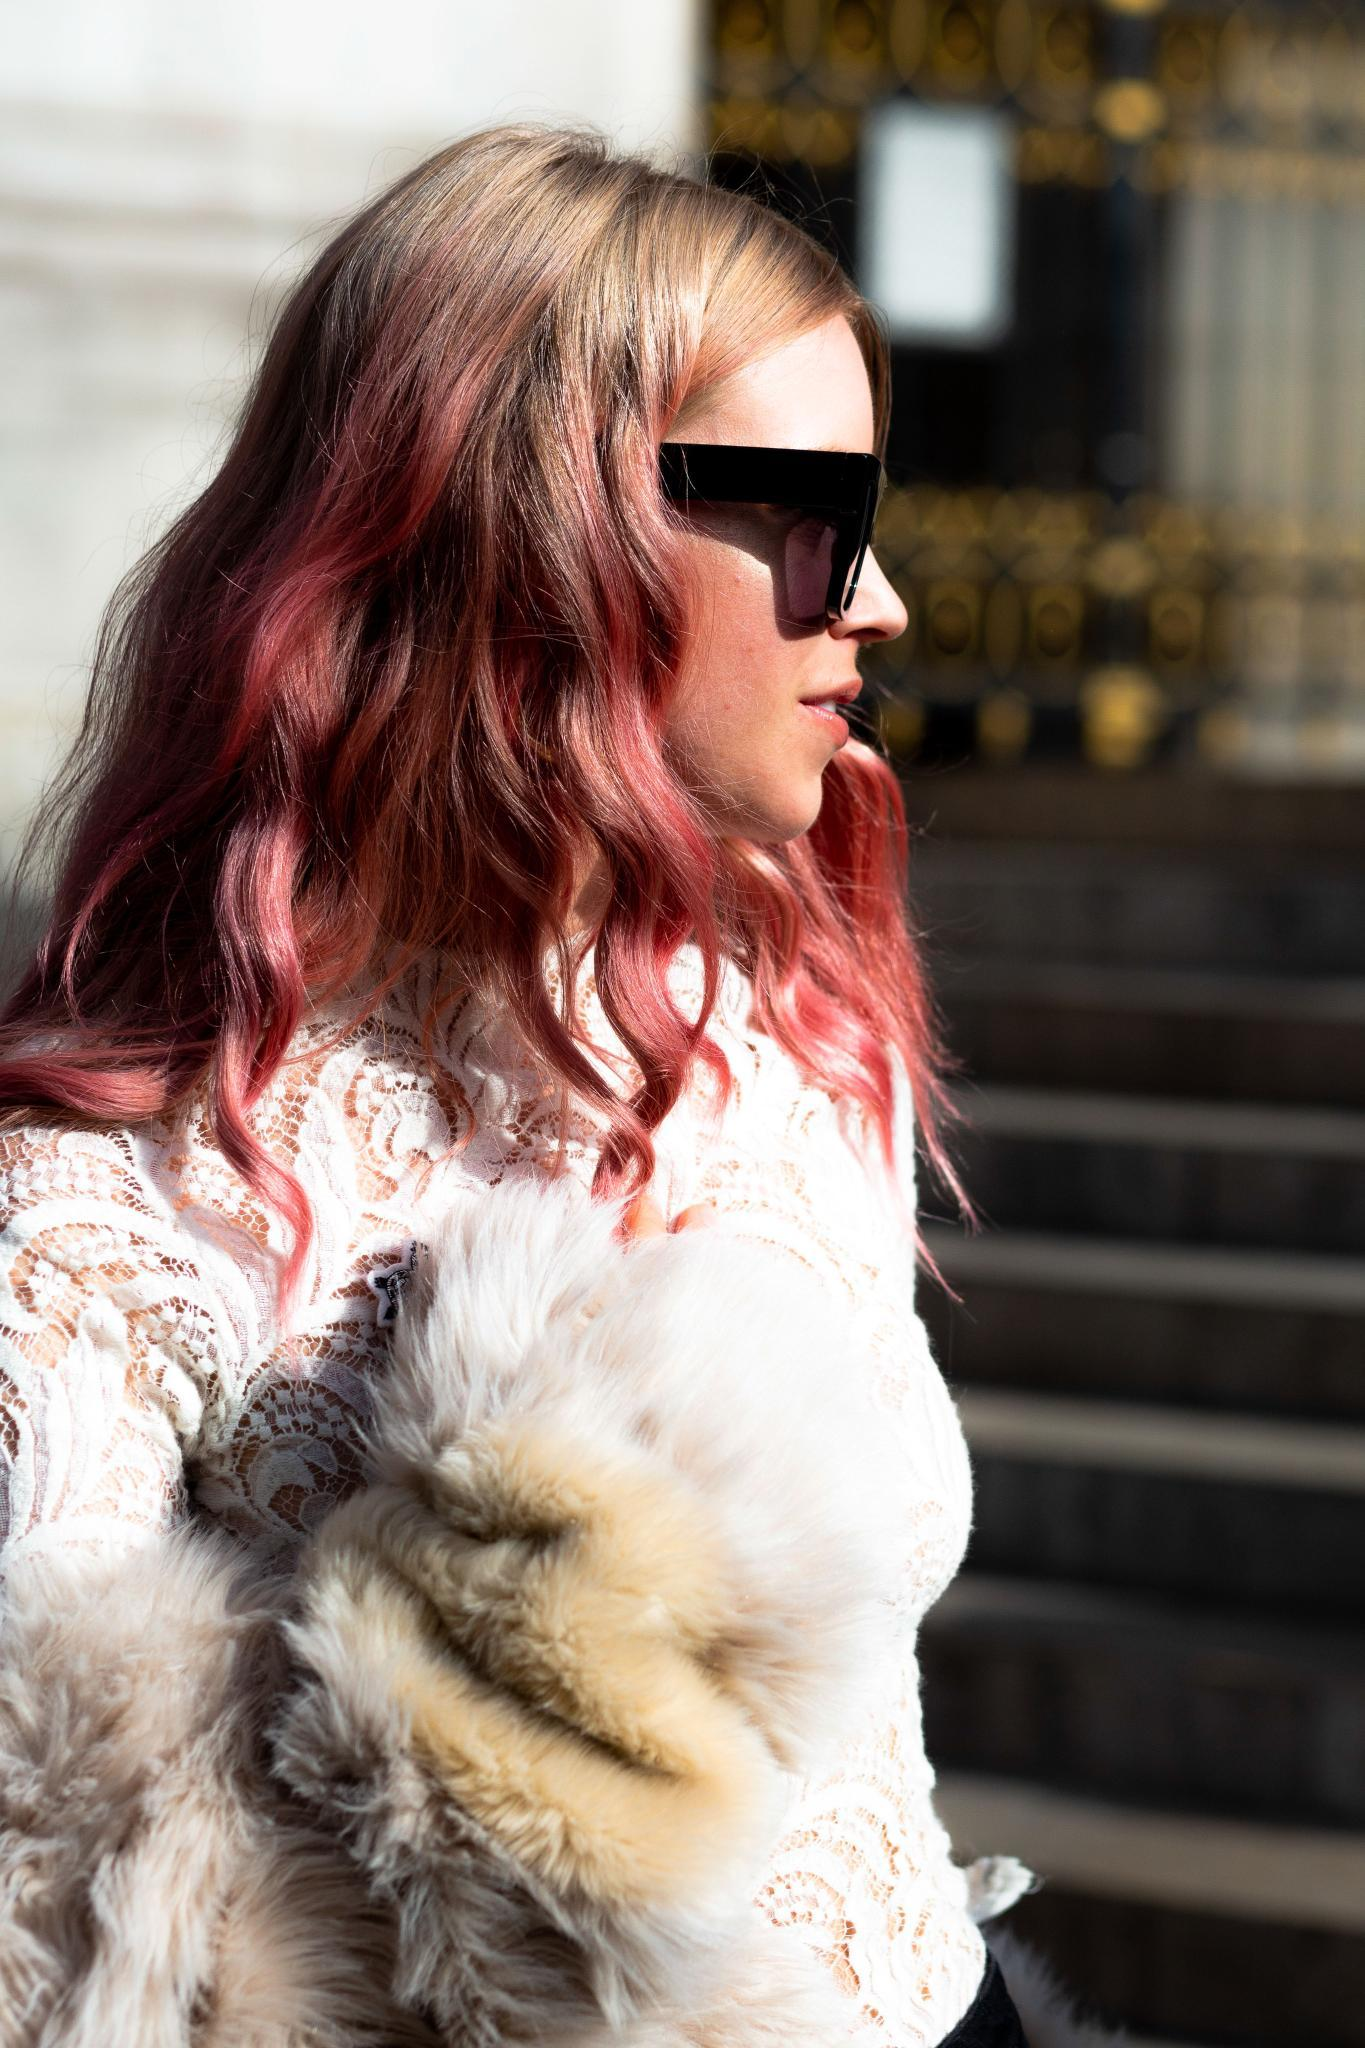 sweater weather hairstyles: pink hair